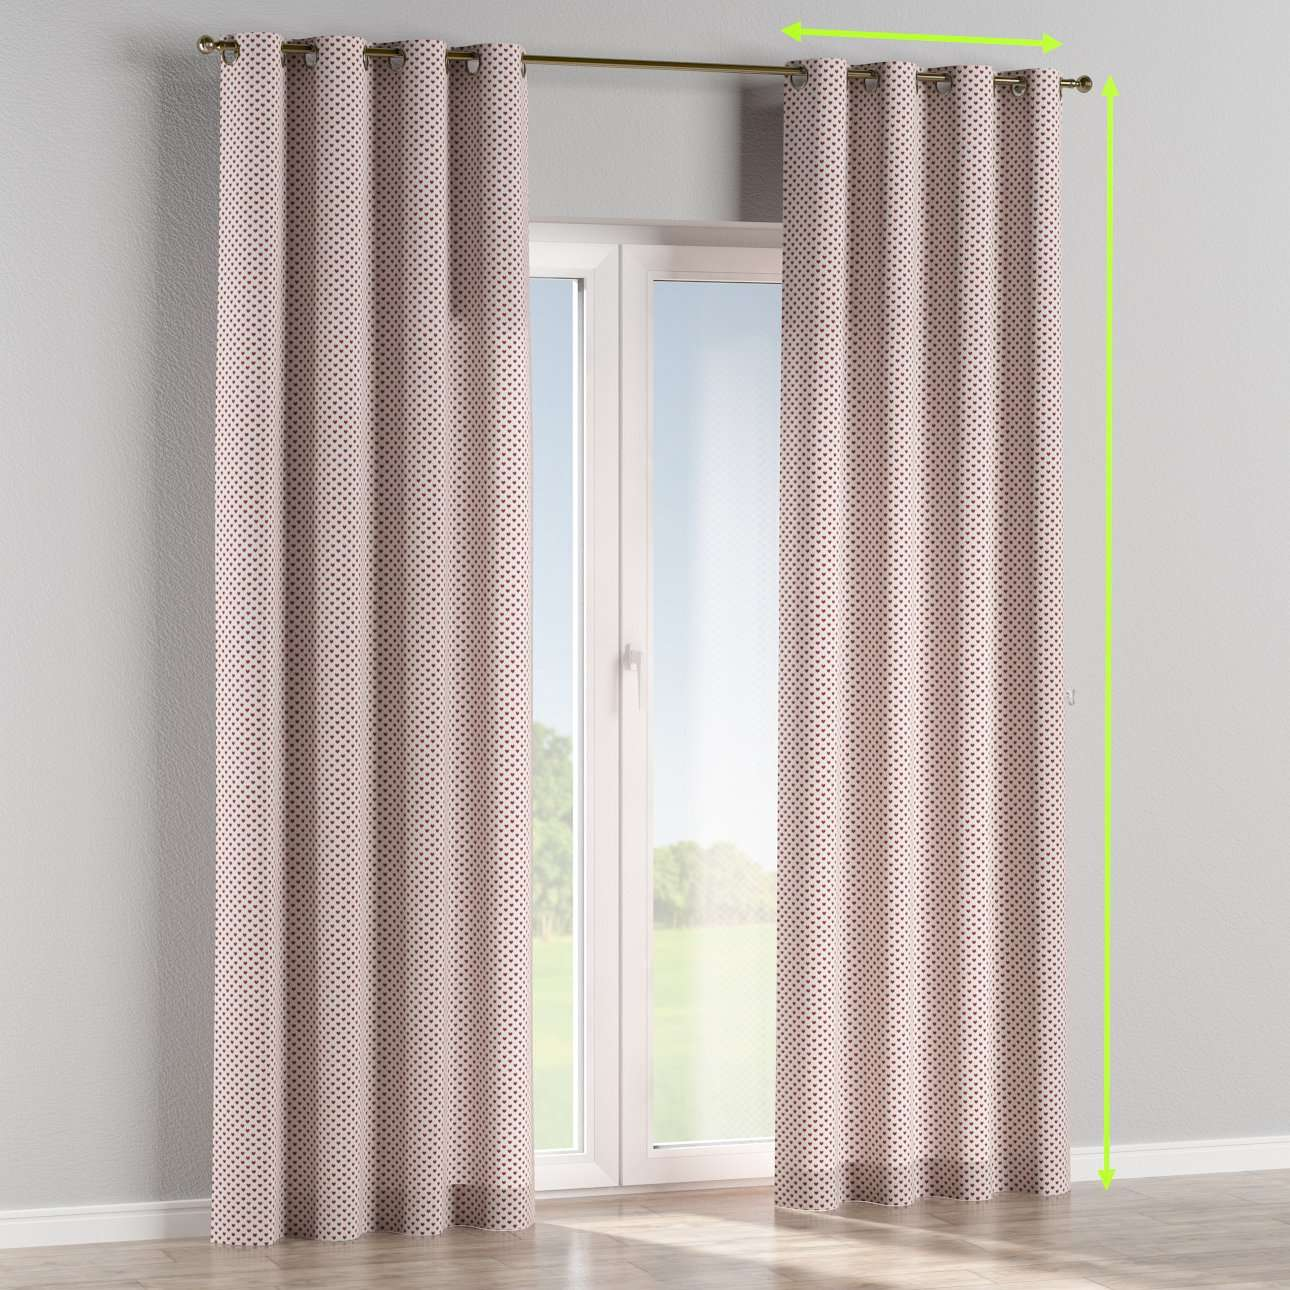 Eyelet curtains in collection SALE, fabric: 630-04